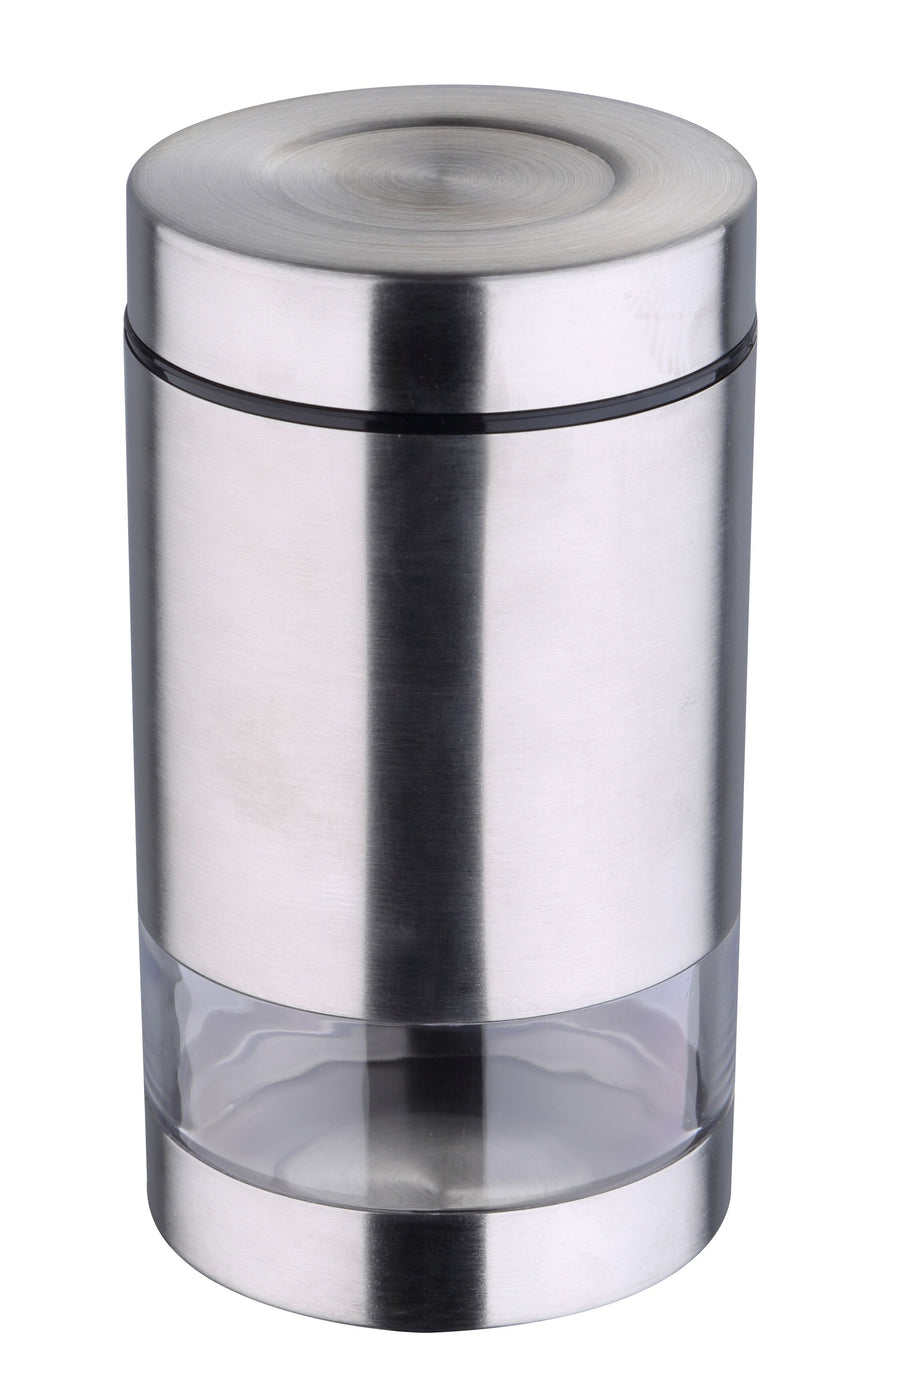 Canister 5500 ml Stainless Steel (Silver)